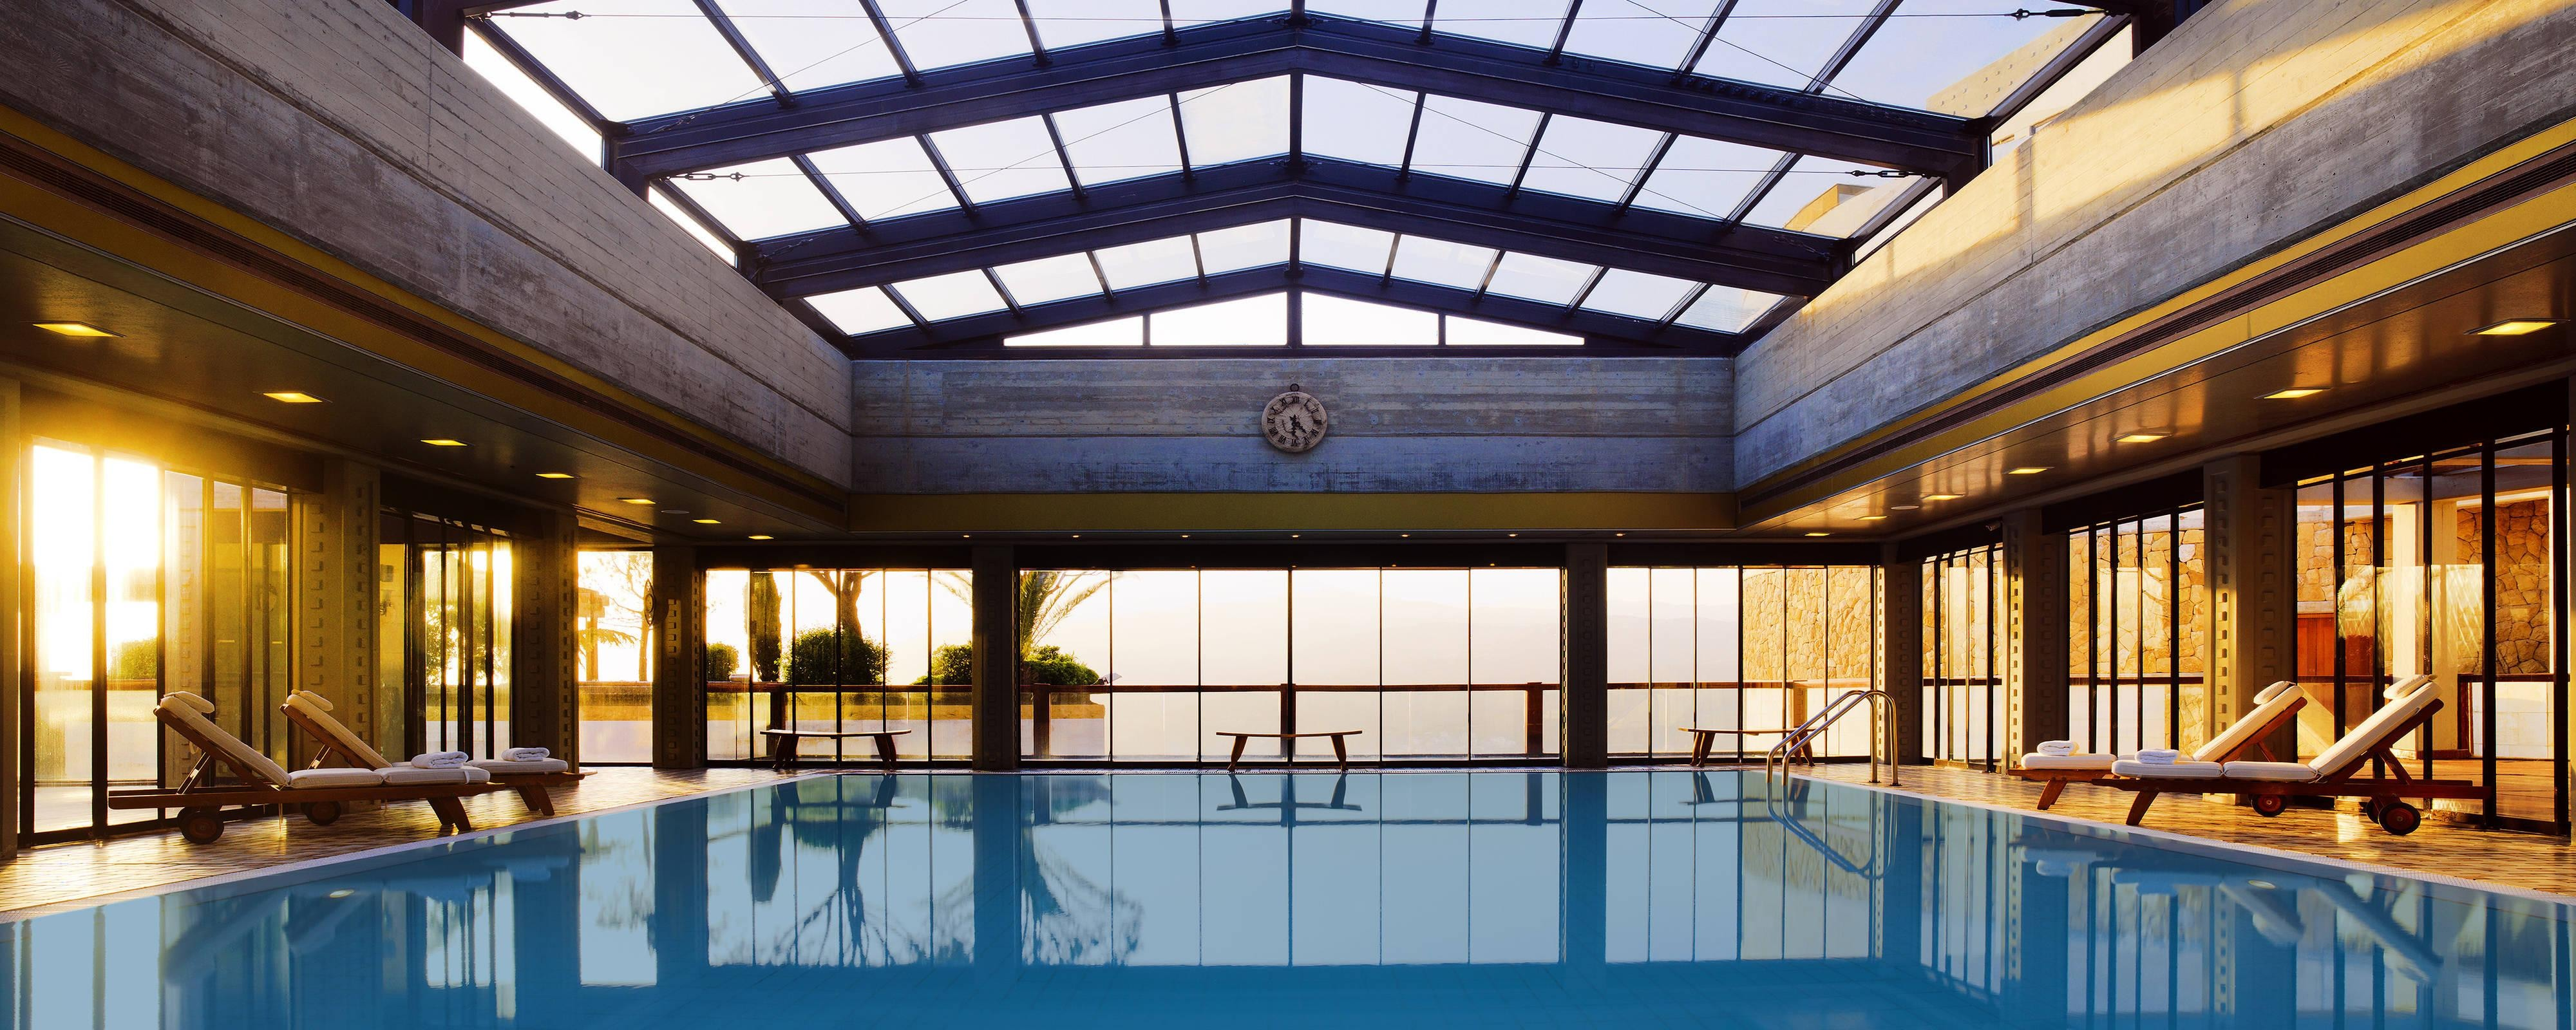 Fitness Center - Indoor Pool